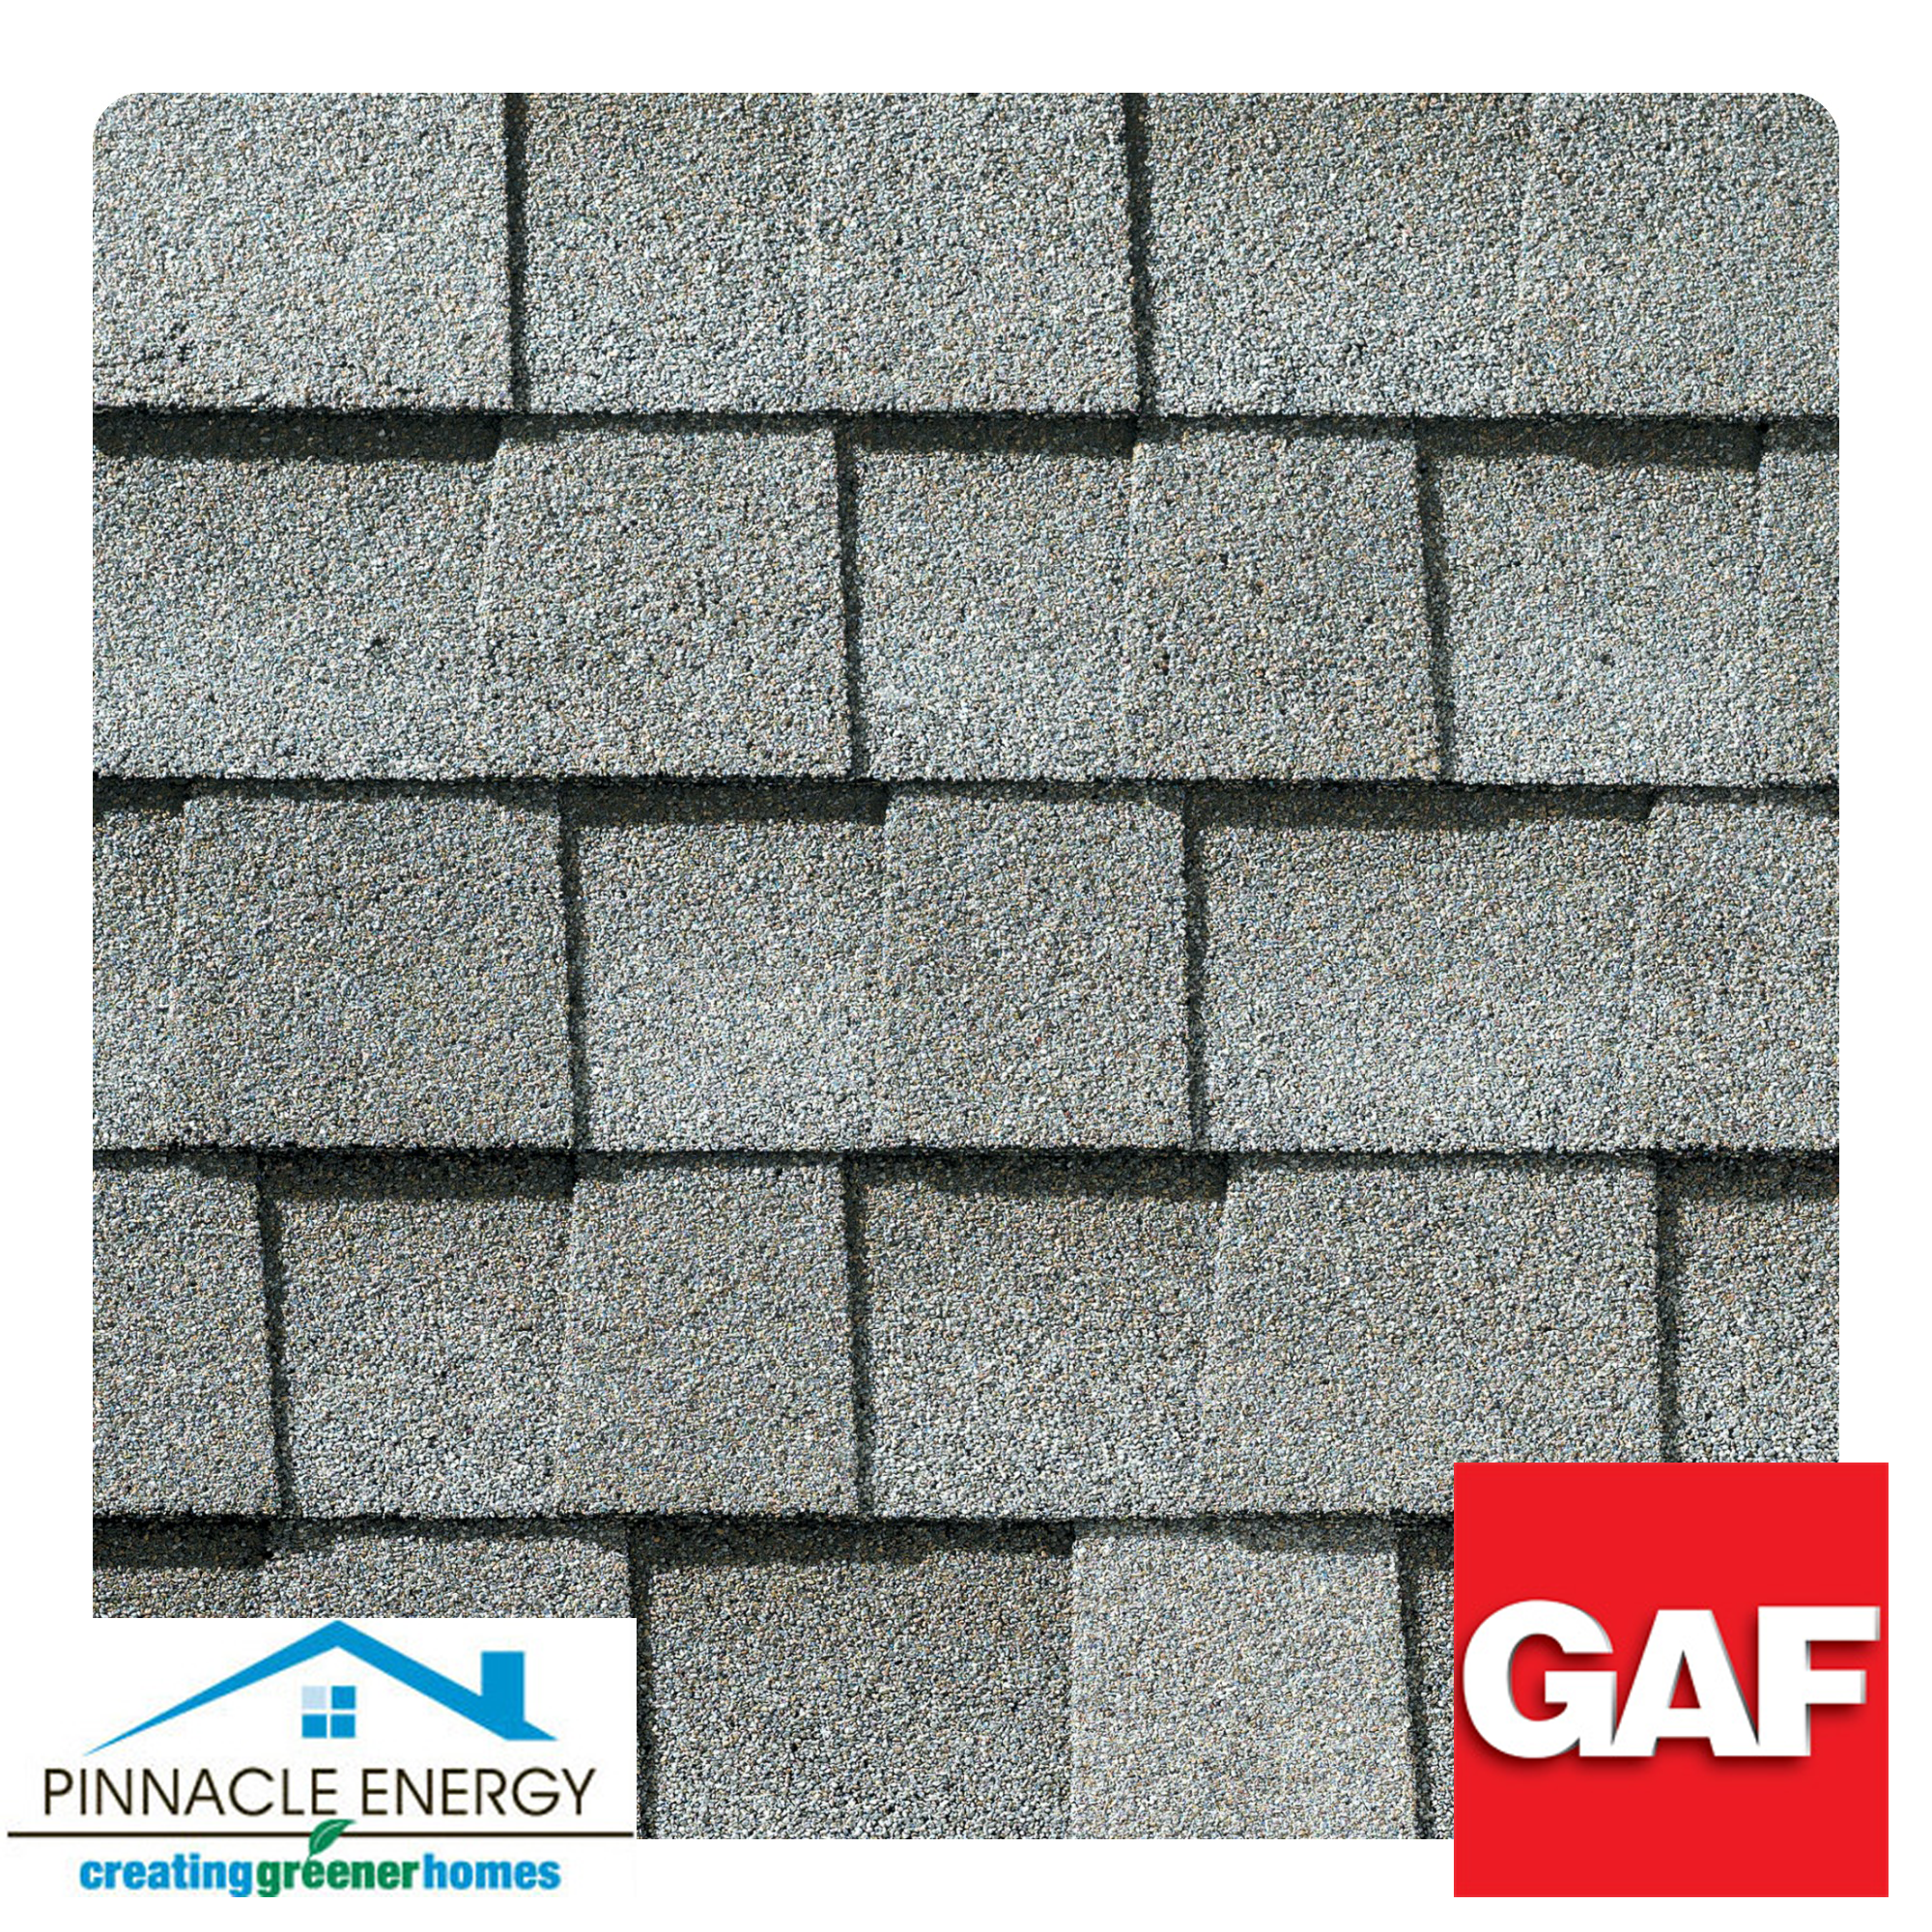 Fox Hollow Gray: Multi-faceted design and light-reflective construction add dimension and depth to the shingle